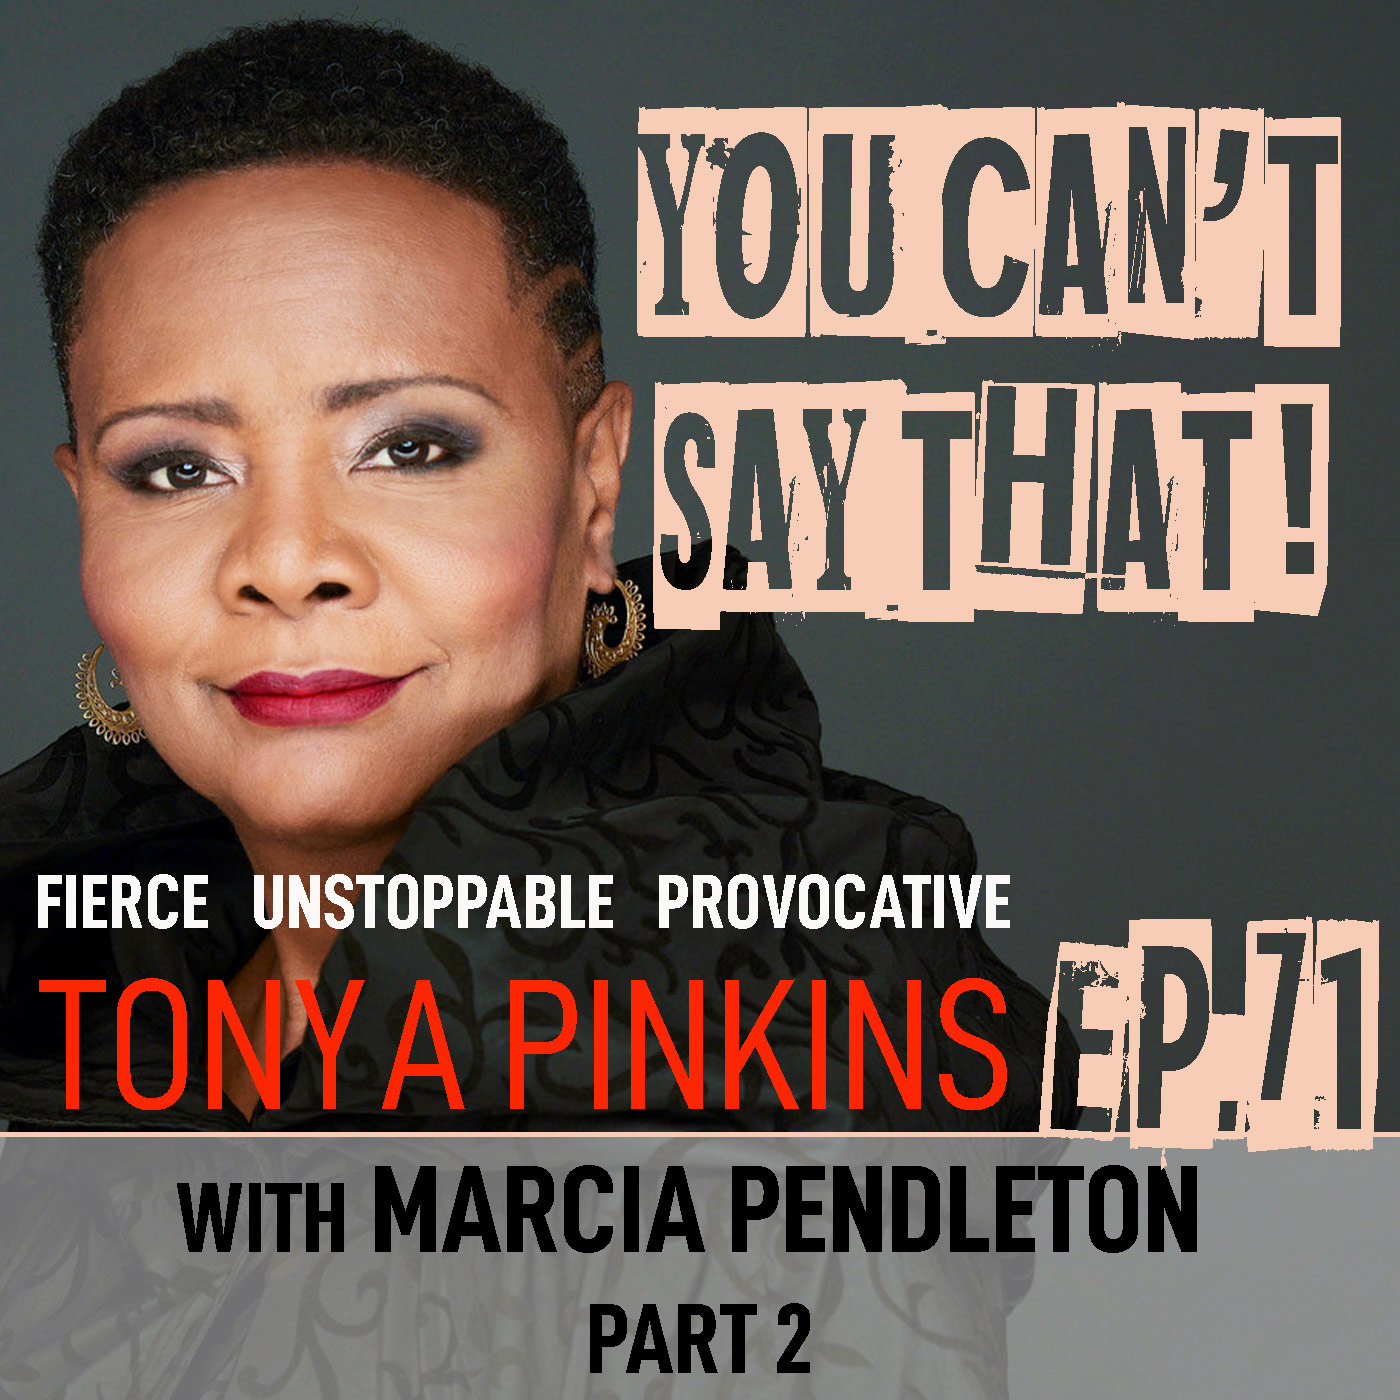 You Can't Say That Tonya Pinkins Ep71 - Marcia Pendleton (Part 2)